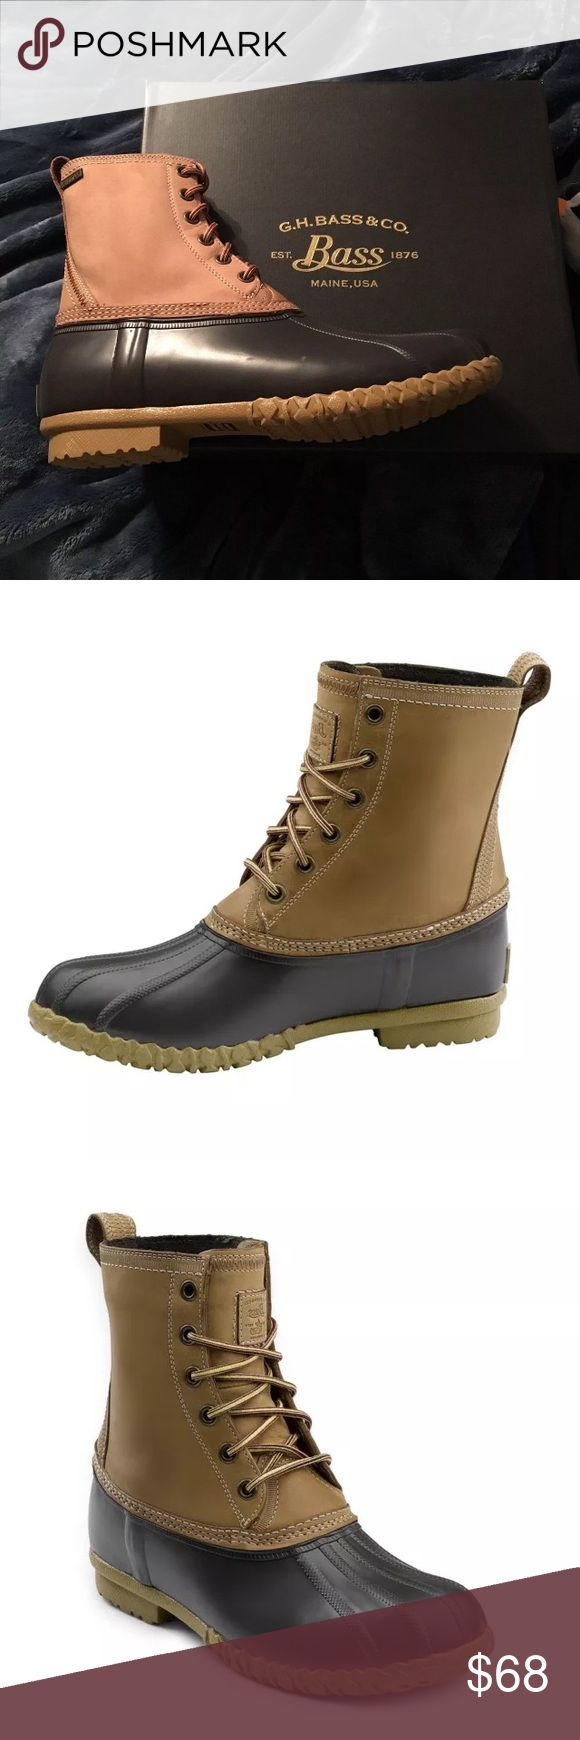 G.H Bass Duck Boots men's G.H bass duck boots. brand new in the original box and plastic. retail 135. multiple sizes available. compare to L.L Bean and sperry duck boots. high quality boots L.L. Bean Shoes Boots